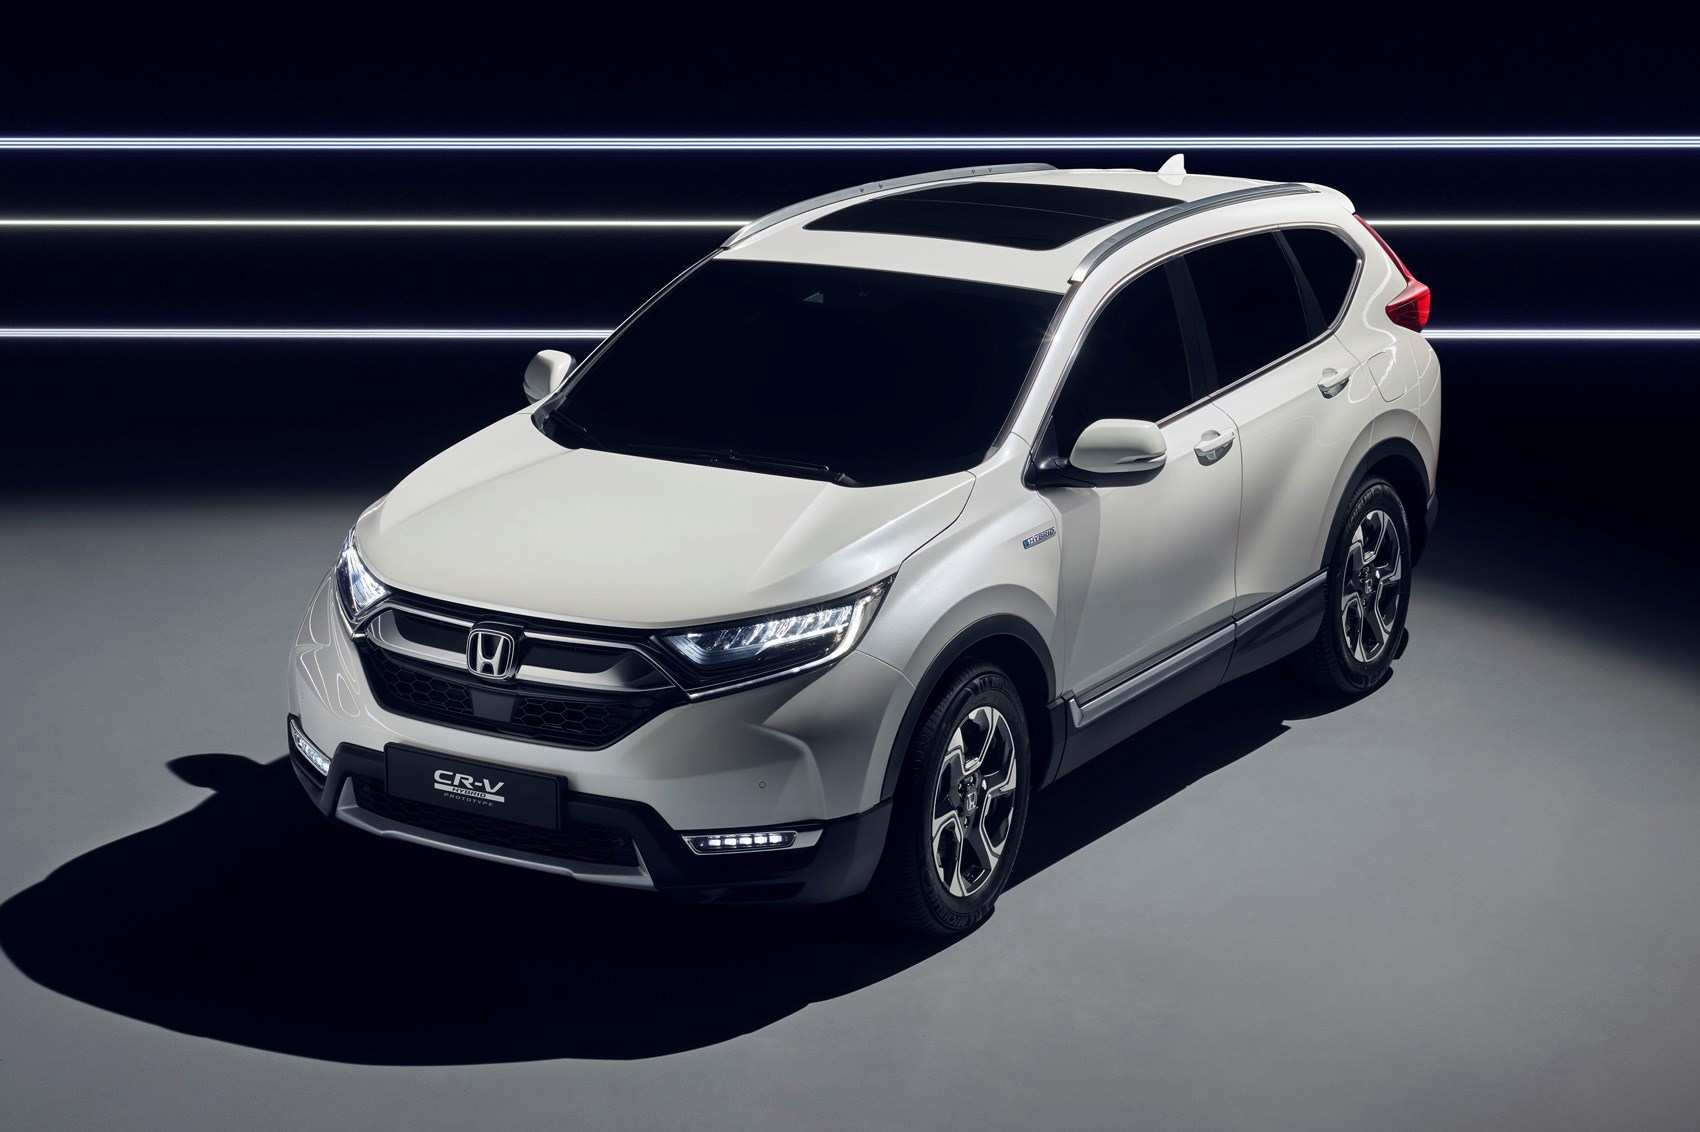 87 Gallery of Honda New Suv 2020 Research New for Honda New Suv 2020